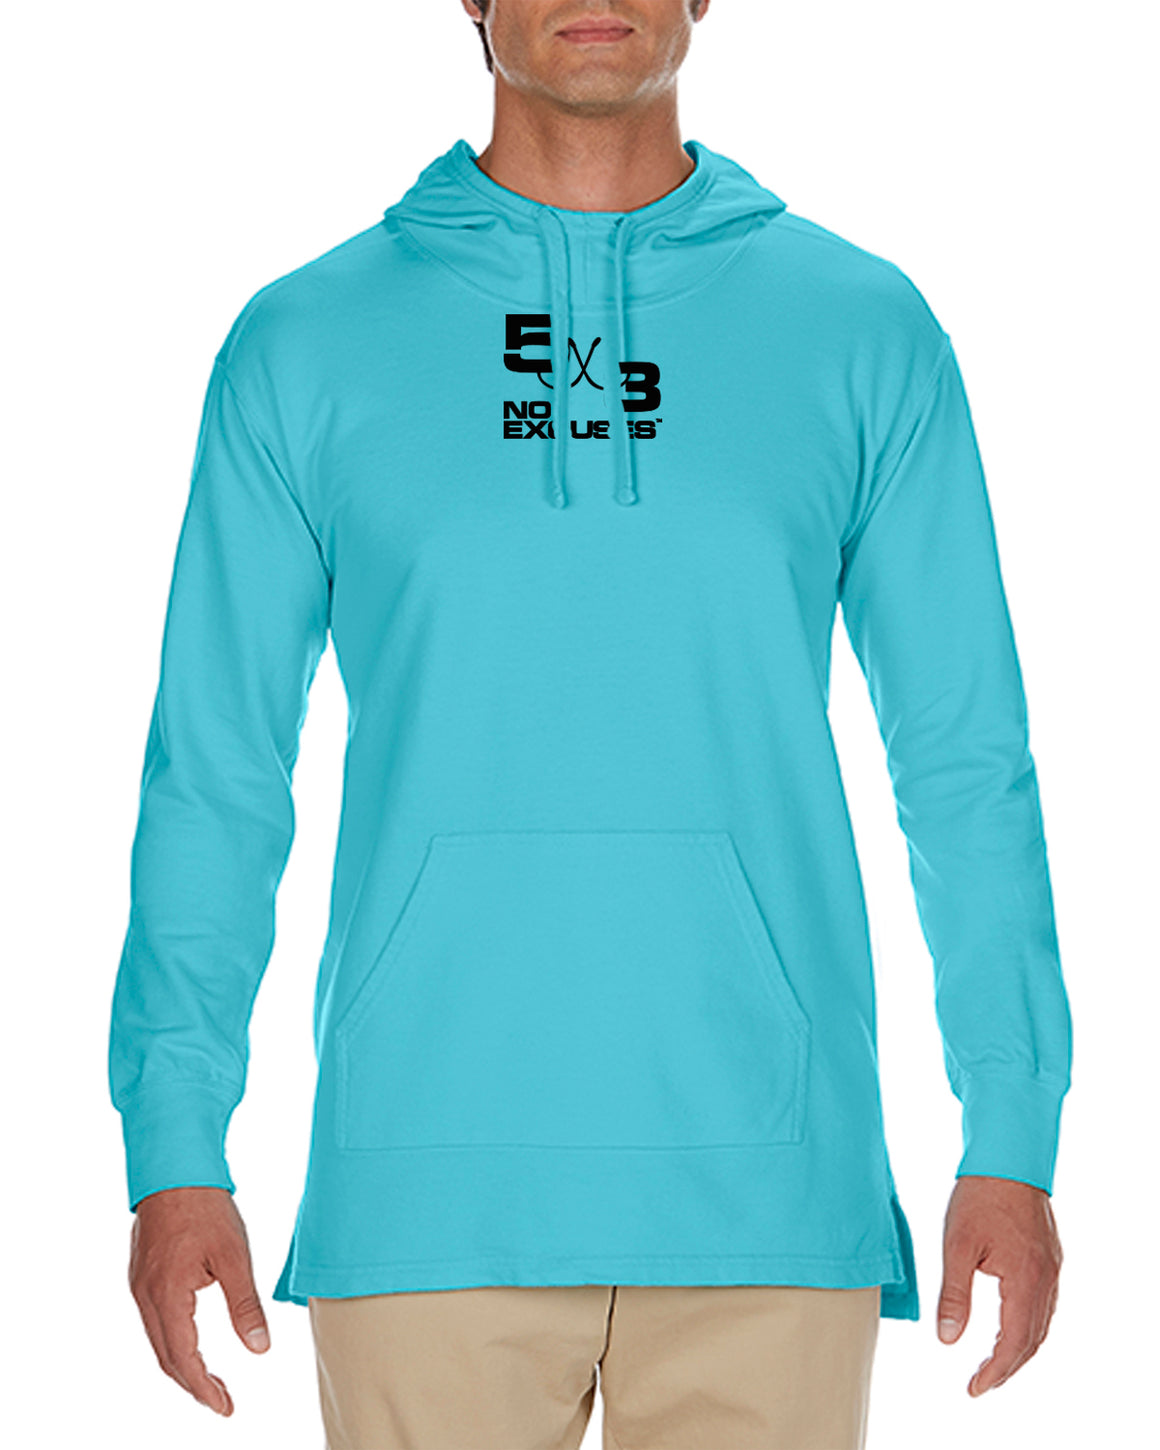 5X3 Hooded T-Shirt Preorder